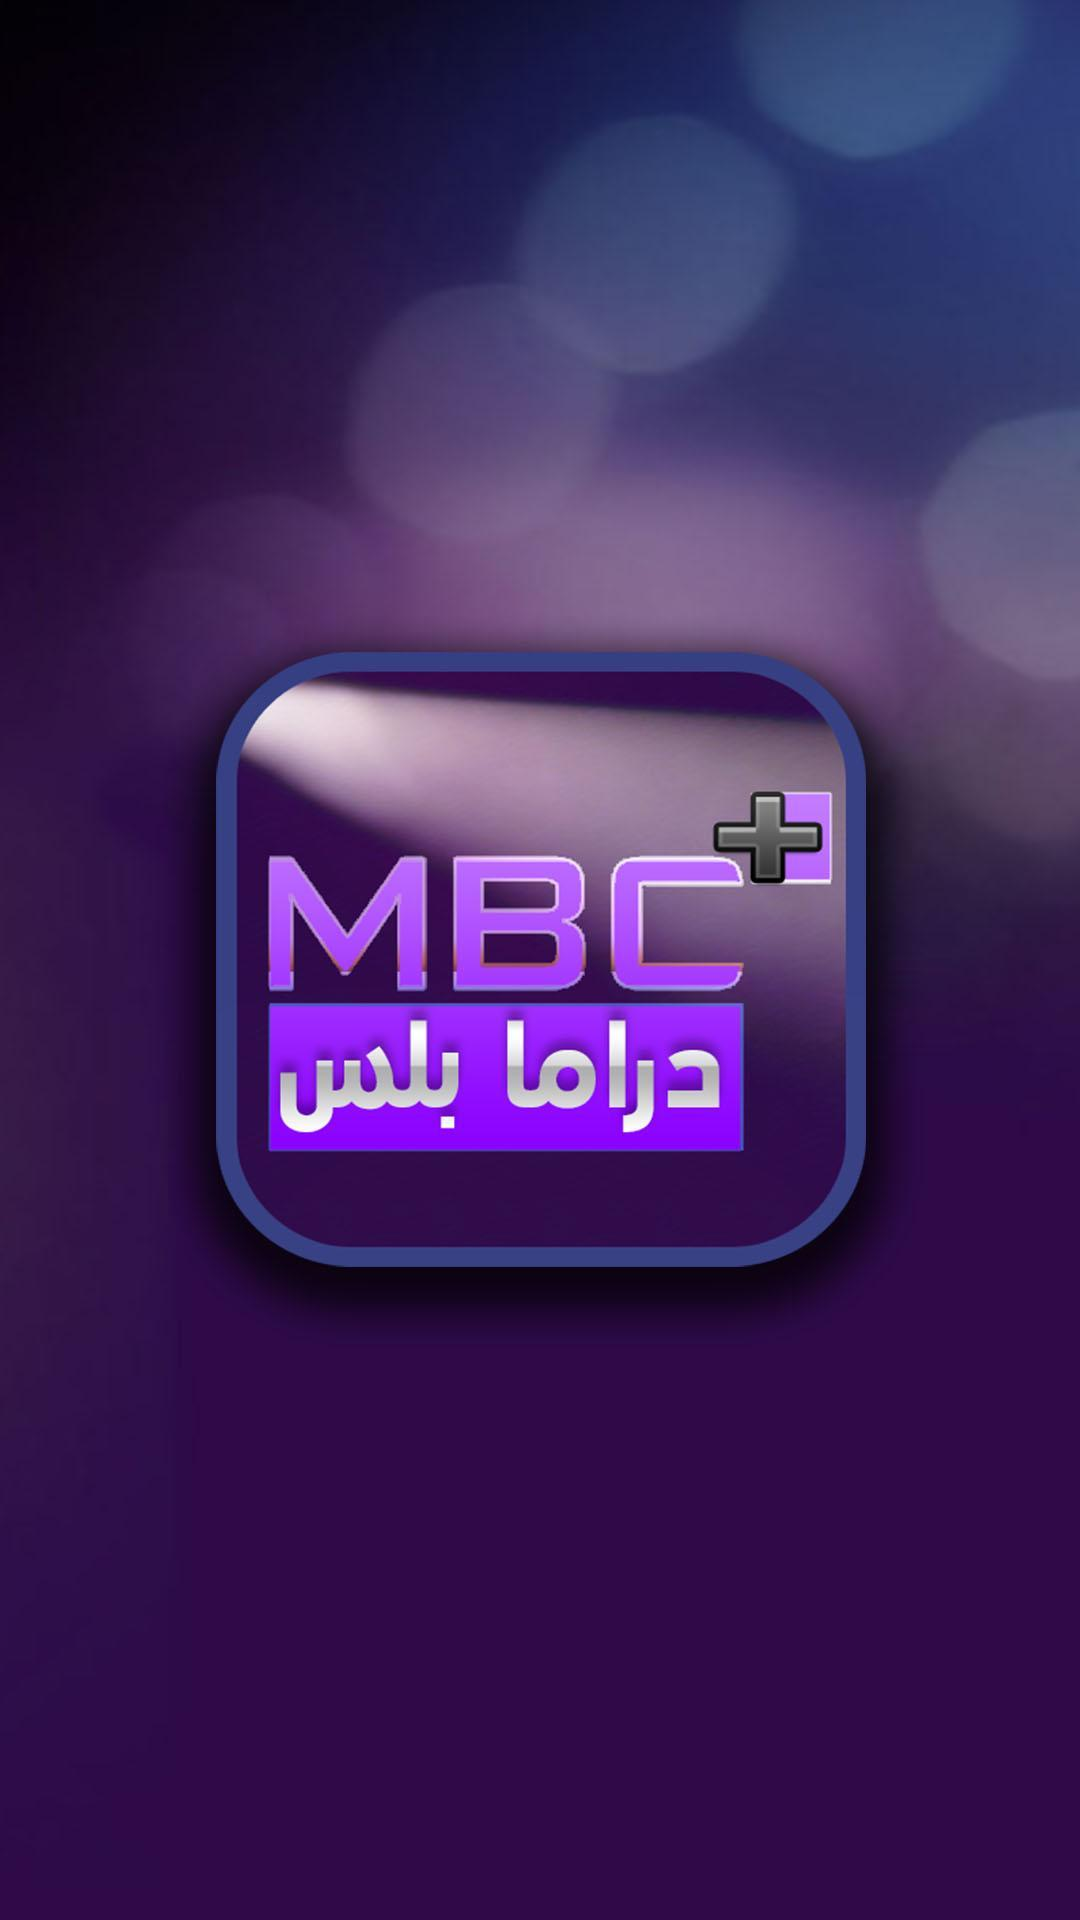 mbc drama plus hd live for Android - APK Download